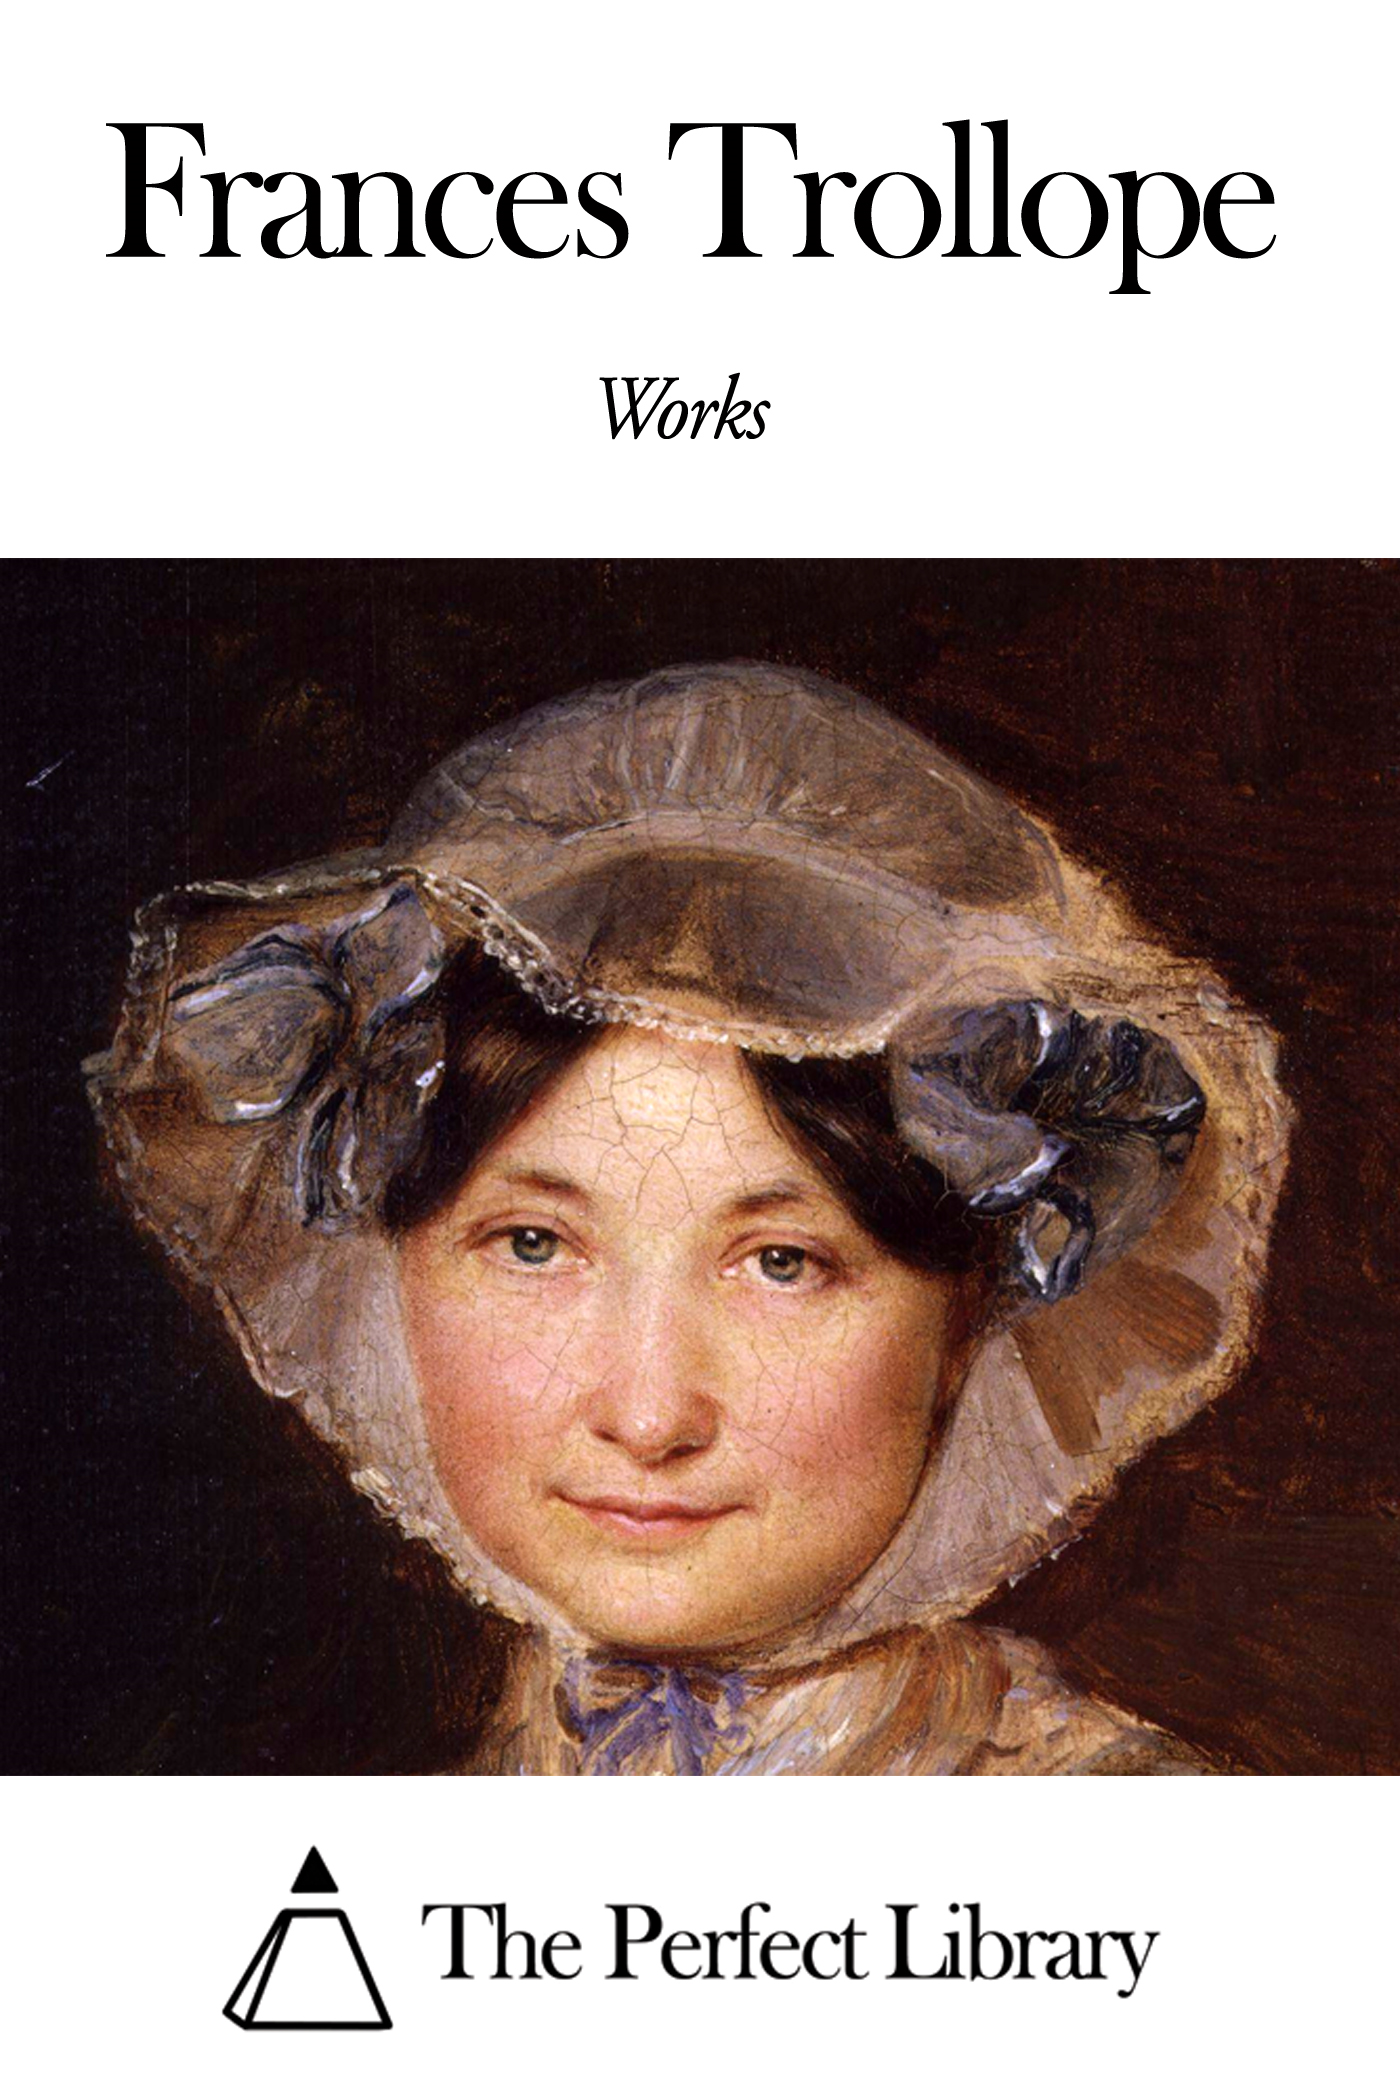 Works of Frances Trollope